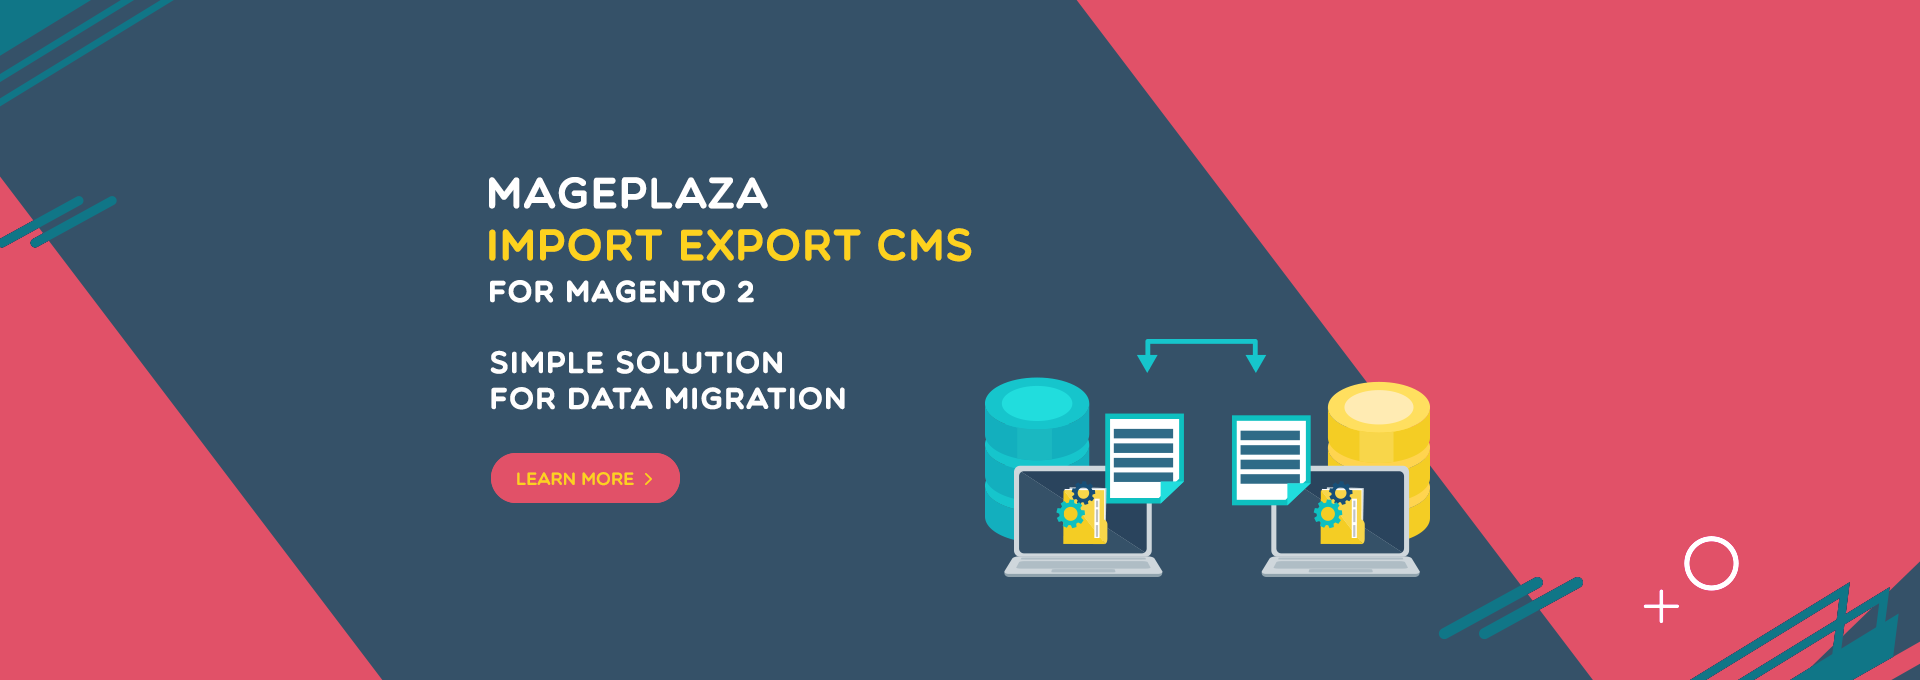 magento 2 import export cms